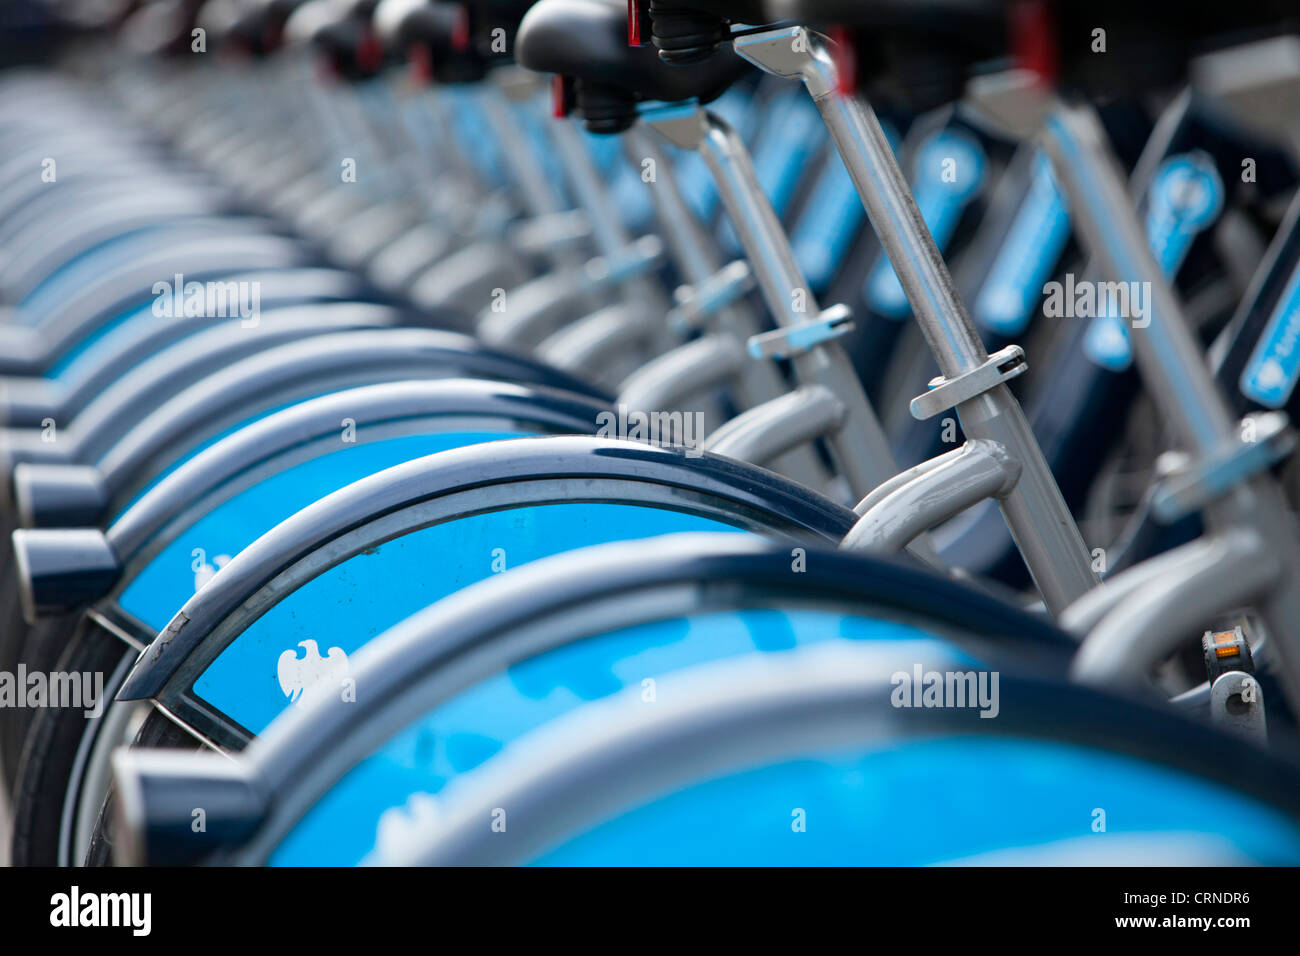 A row of Barclays Cycle hire scheme bikes in a docking station. - Stock Image